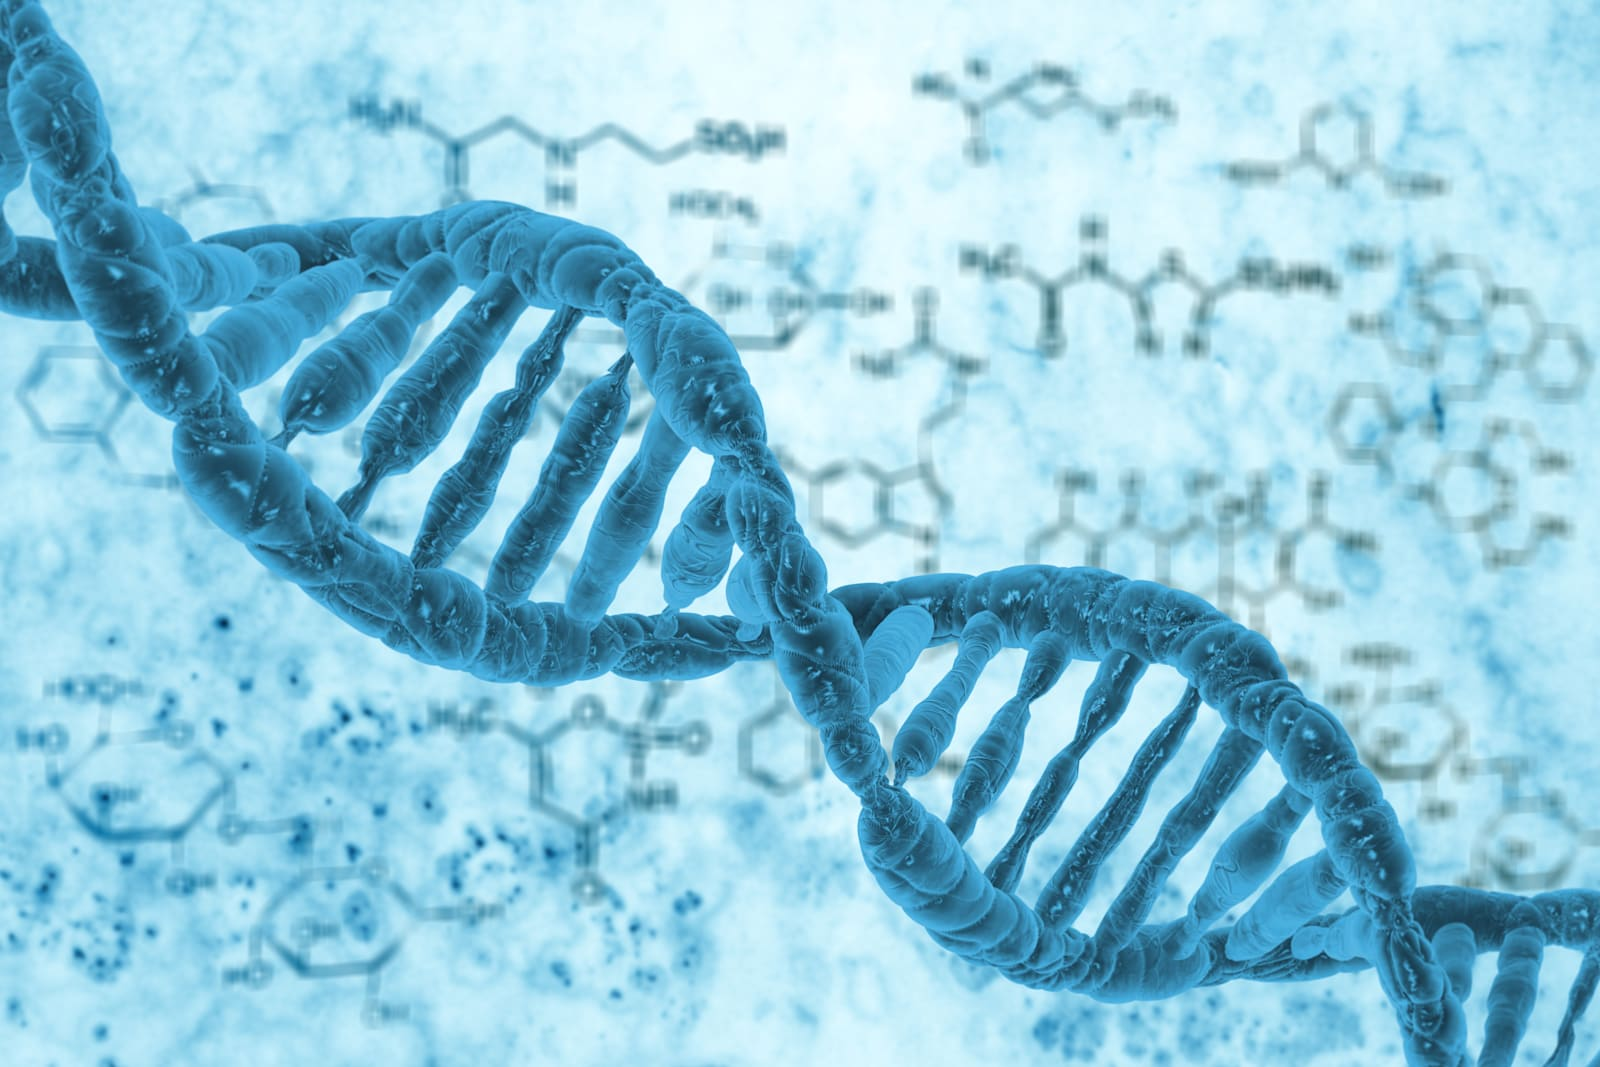 DNA 'computers' could lead to self-activated smart pills